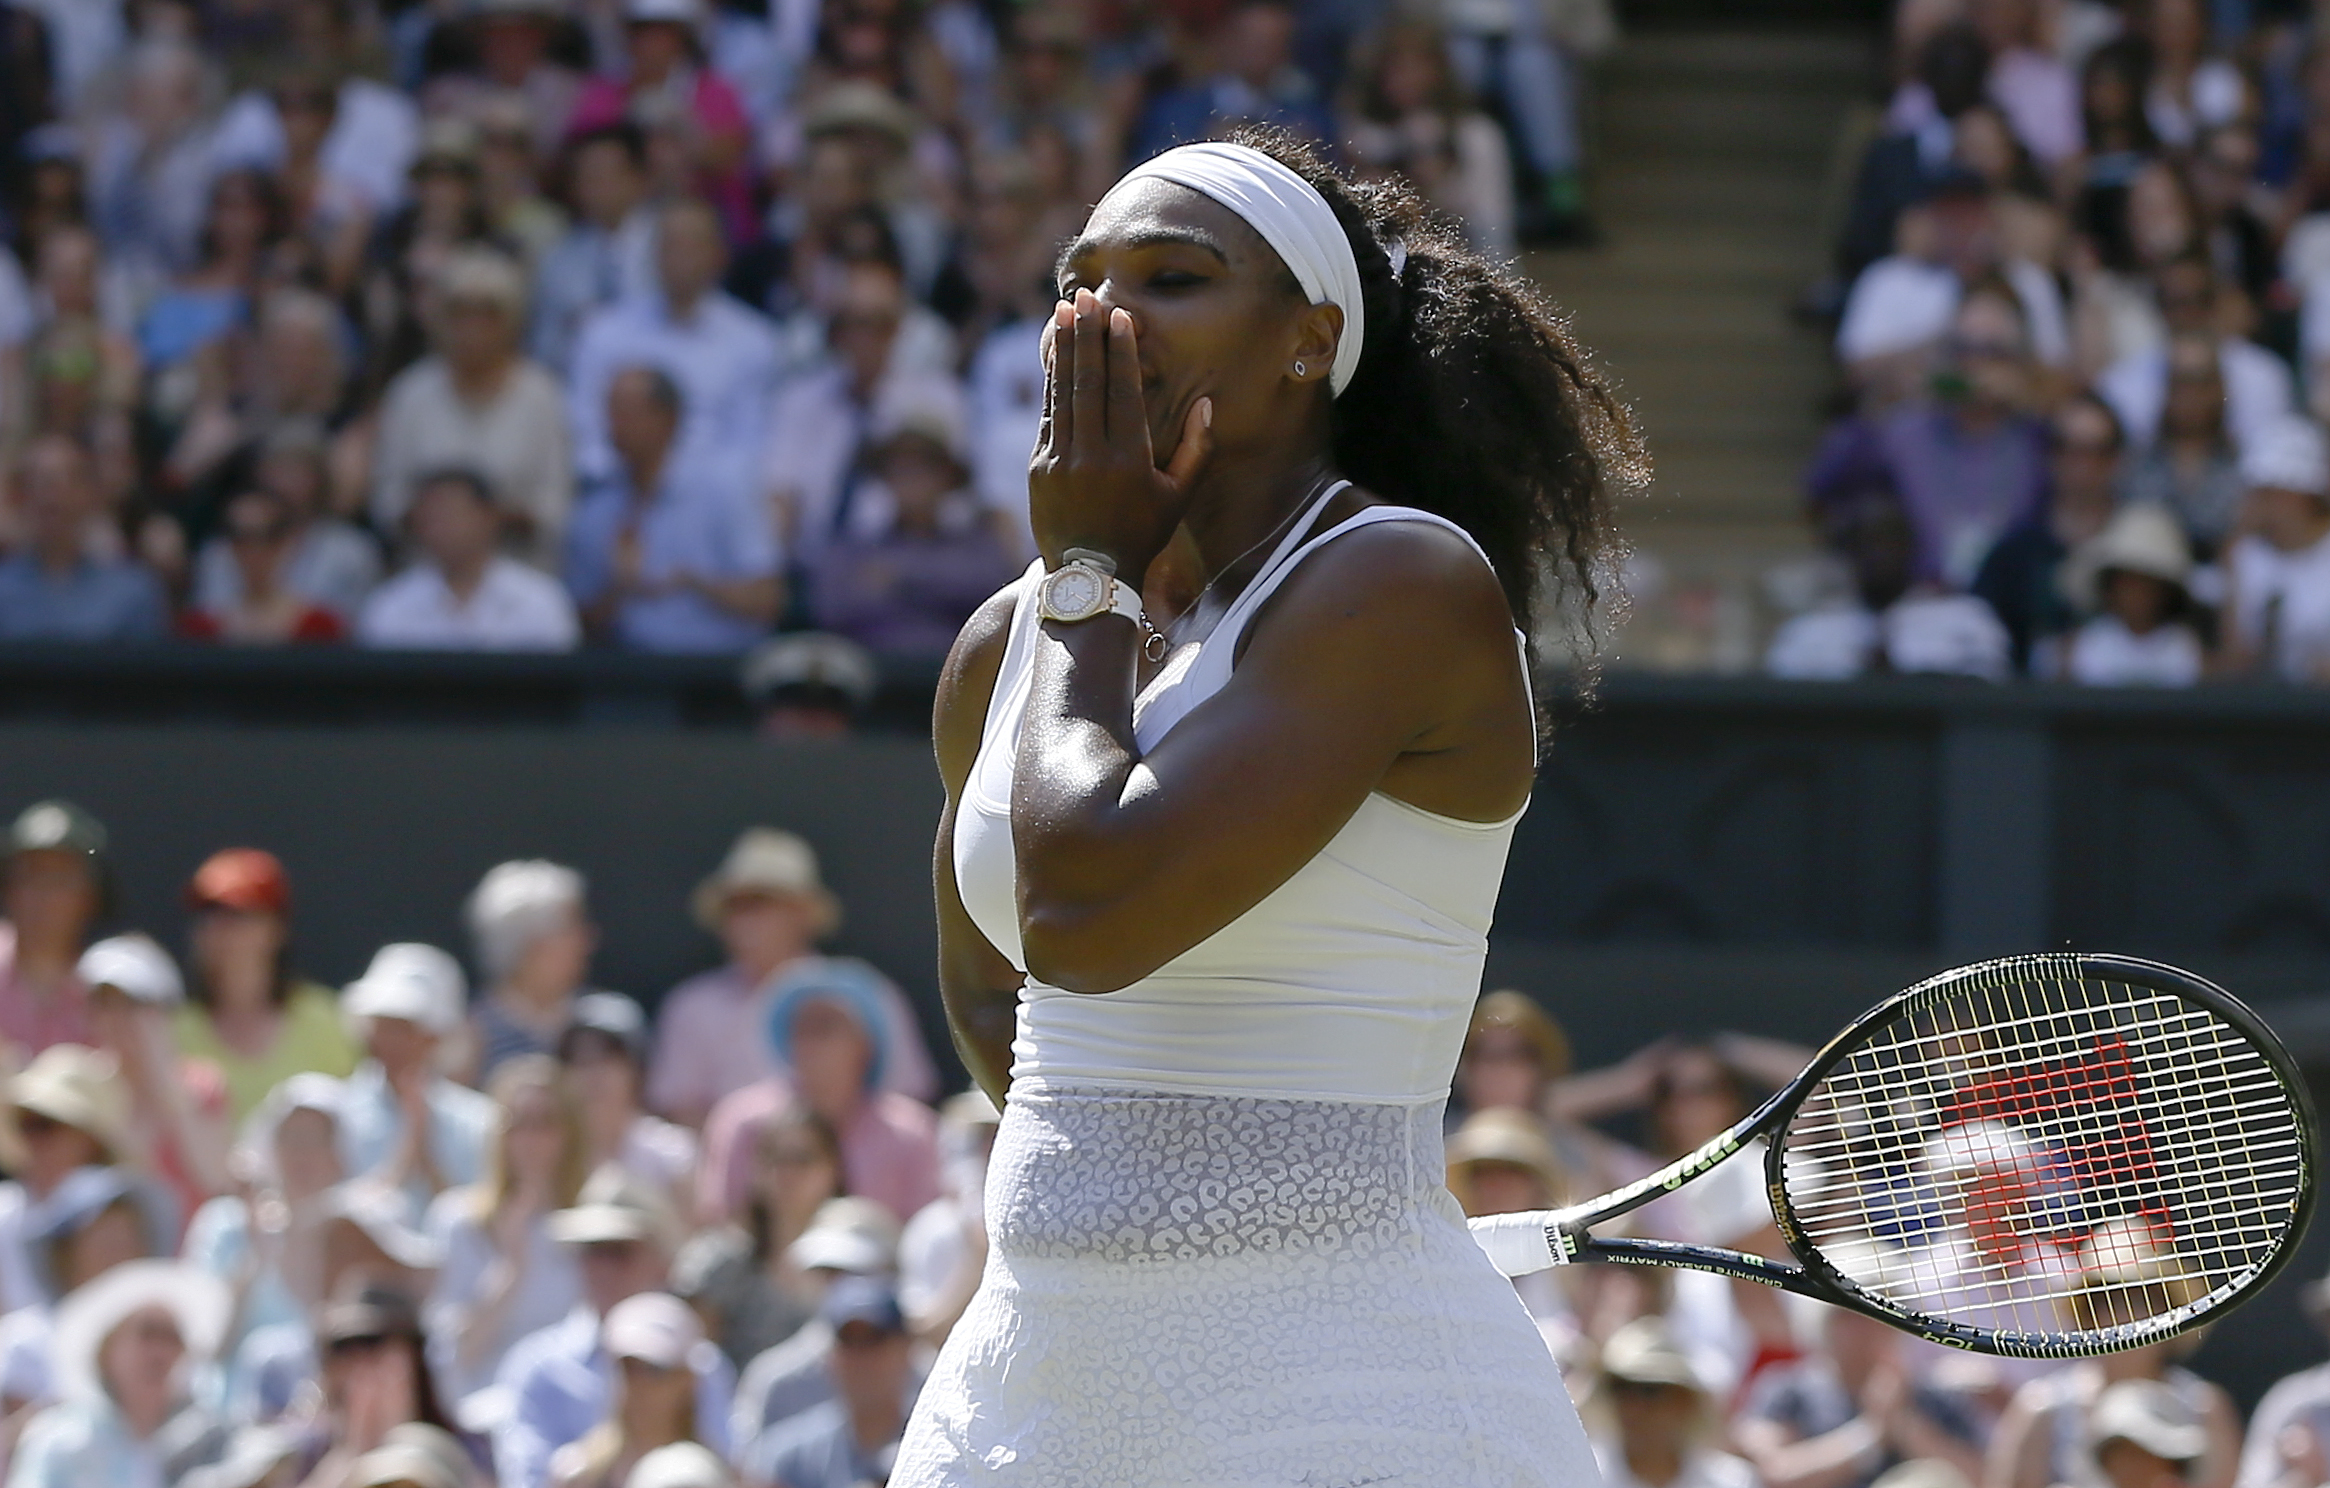 Serena Williams of the United States  celebrates winning the singles match Garbine Muguruza of Spain after the women's singles final at the All England Lawn Tennis Championships in Wimbledon, London, Saturday July 11, 2015. Williams won 6-4, 6-4.  (AP Pho